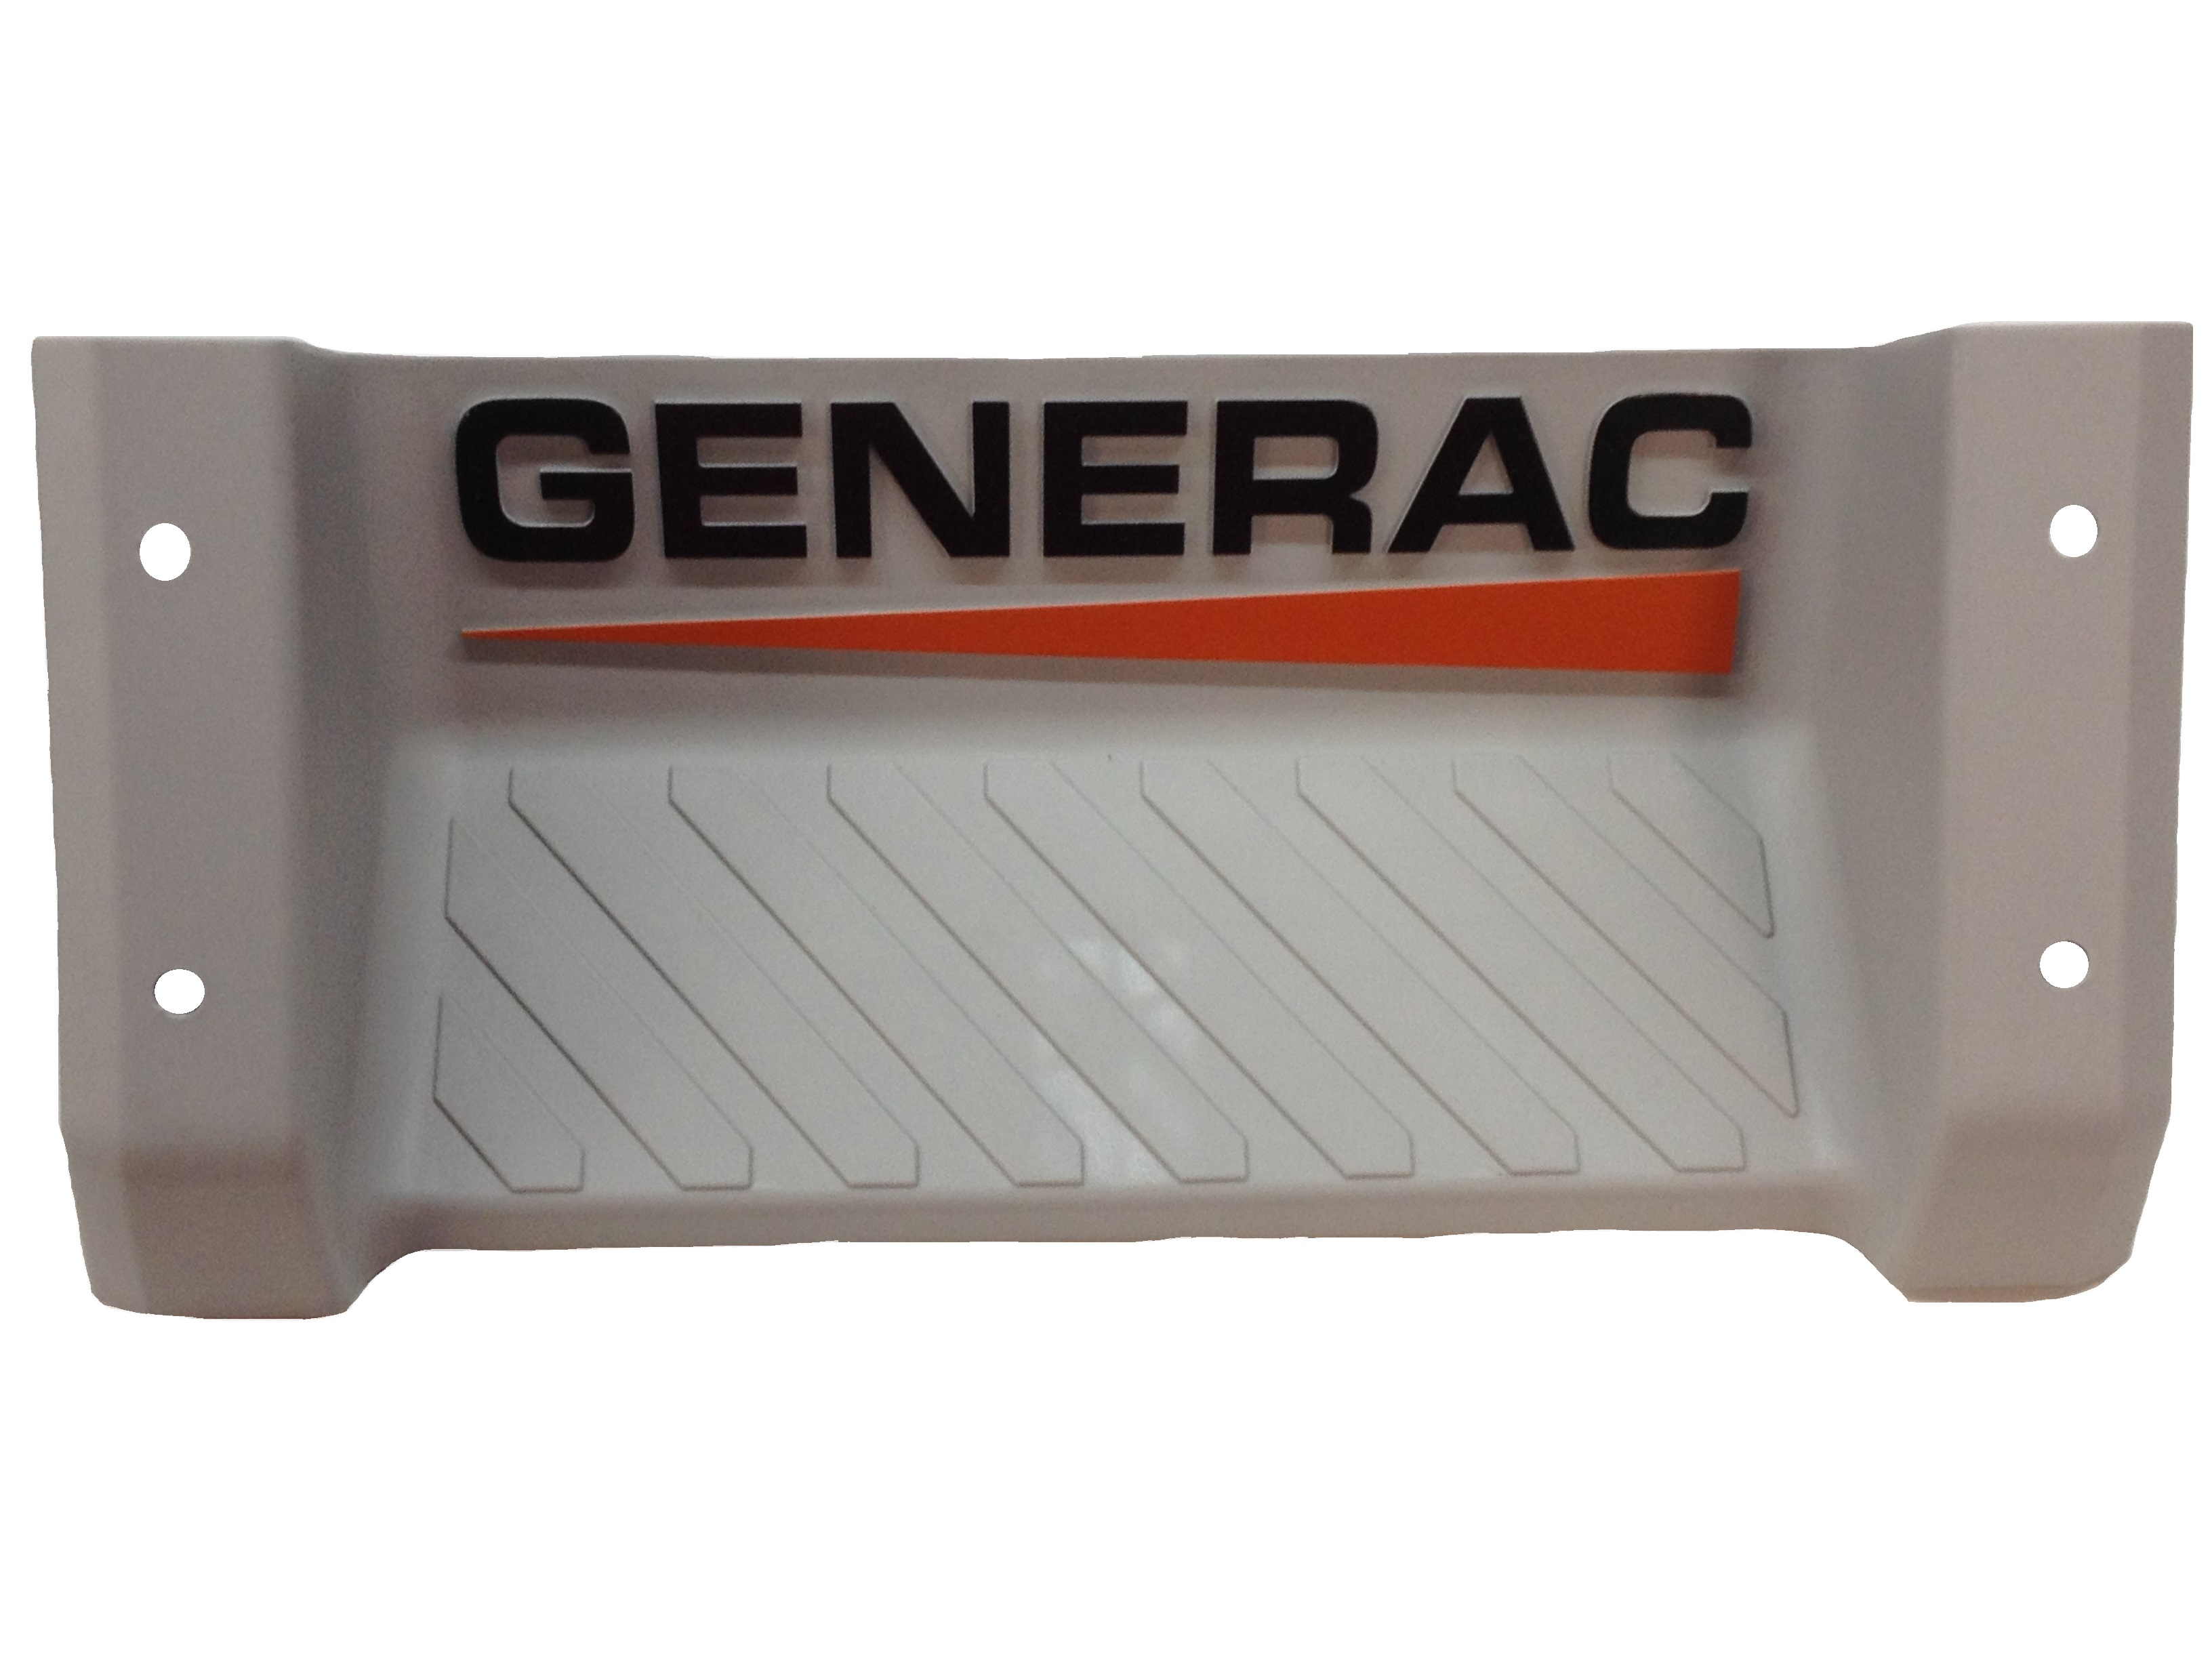 Generac Mount Foot Part 0j2045 Ebay